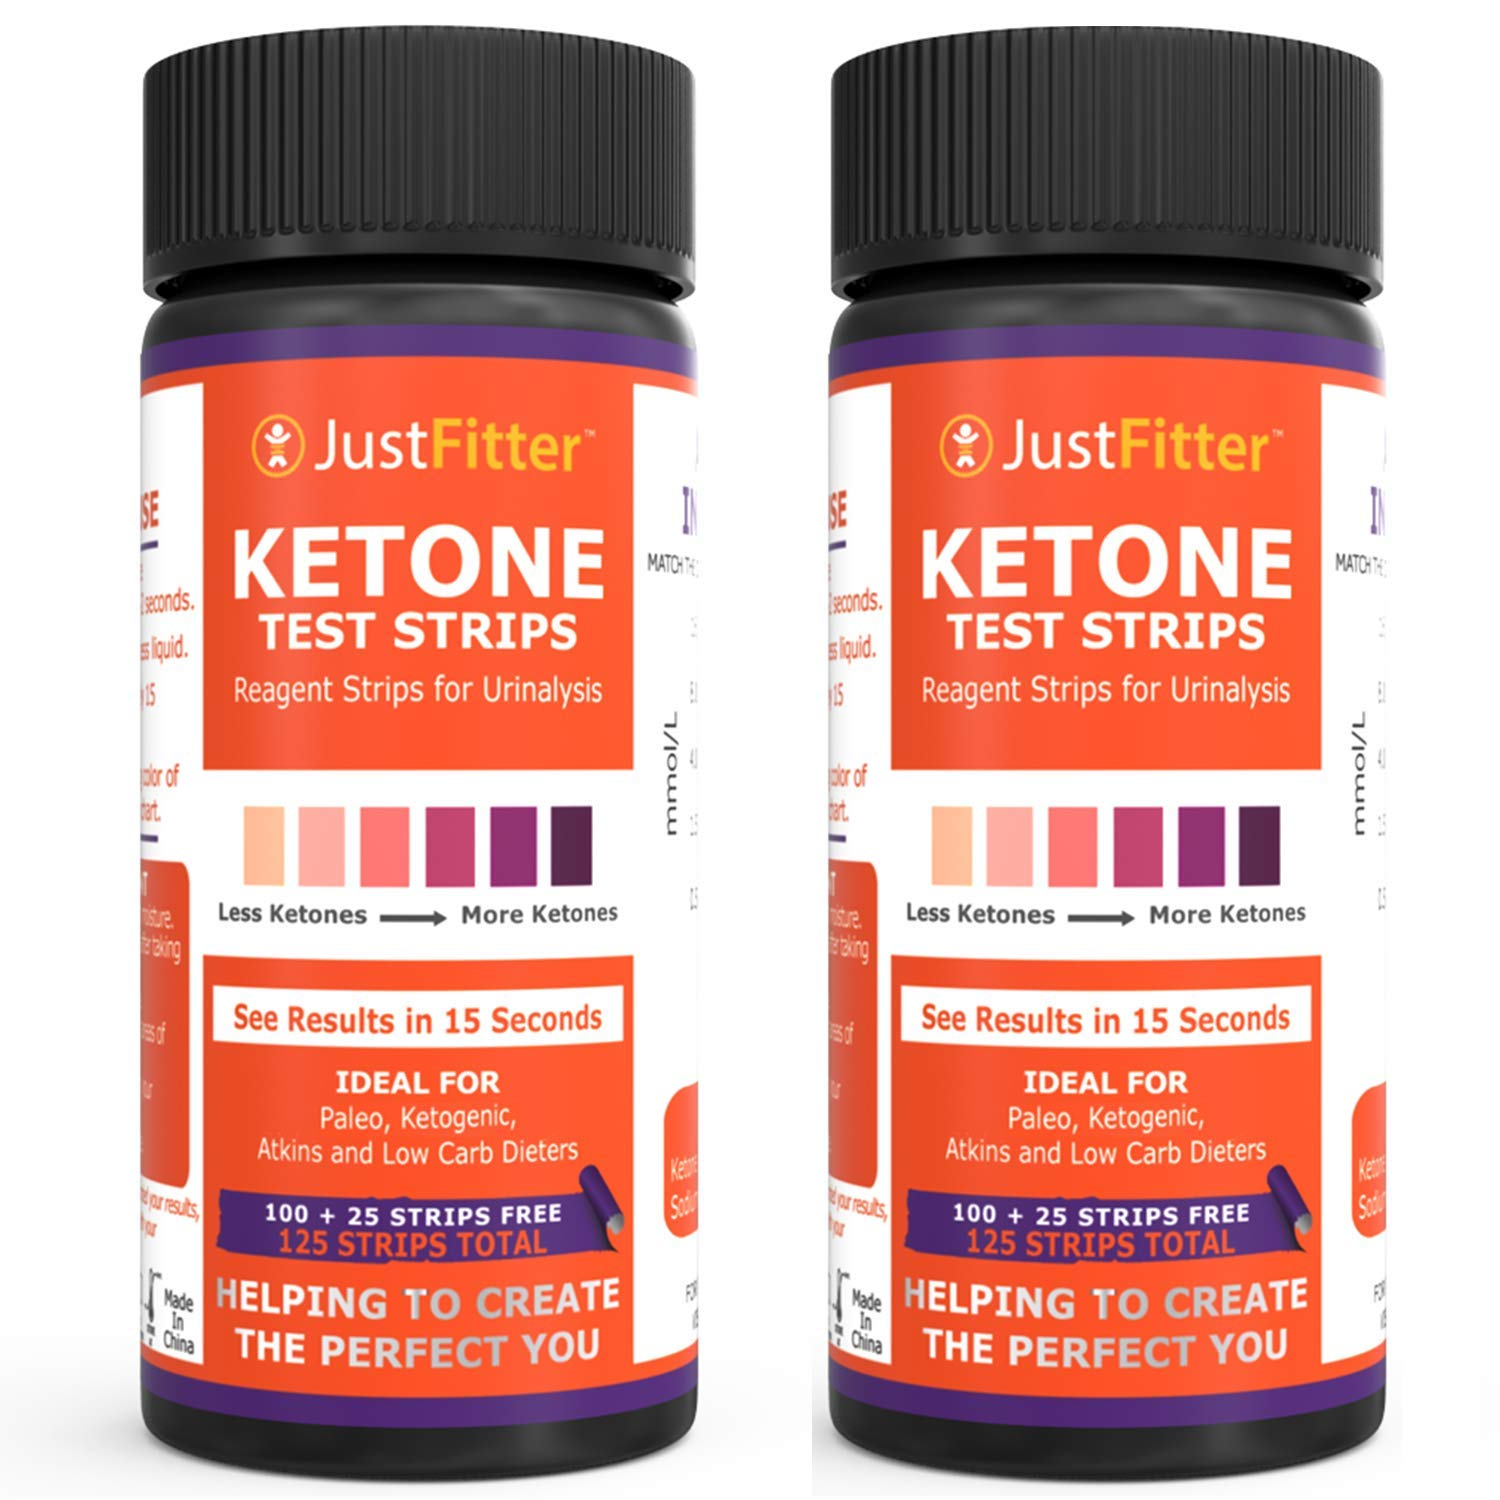 Ketone Keto Urine Test Strips. Lose Weight, Look & Feel Fabulous on a Low Carb Ketogenic or HCG Diet. Get Your Body Back! Accurately Measure Your Fat Burning Ketosis Levels (2 BOTTLES) by Just Fitter